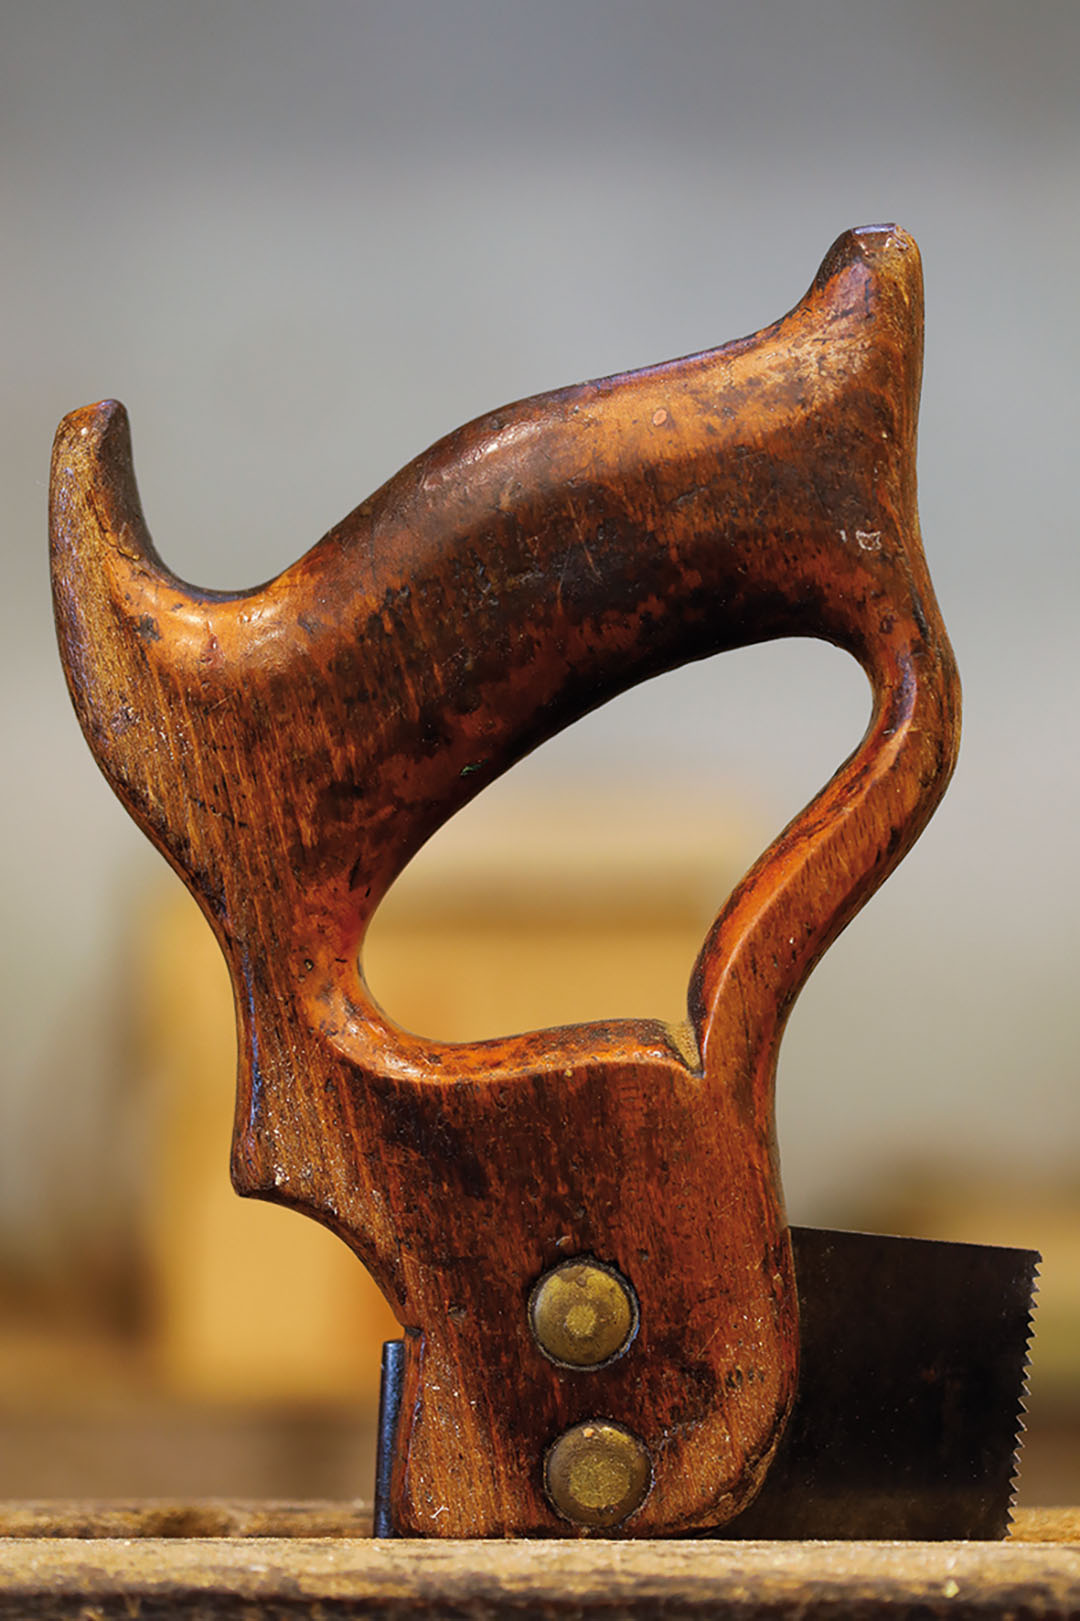 The perfect, precise cut of the noble woods requires suitable tools that live up to this art.